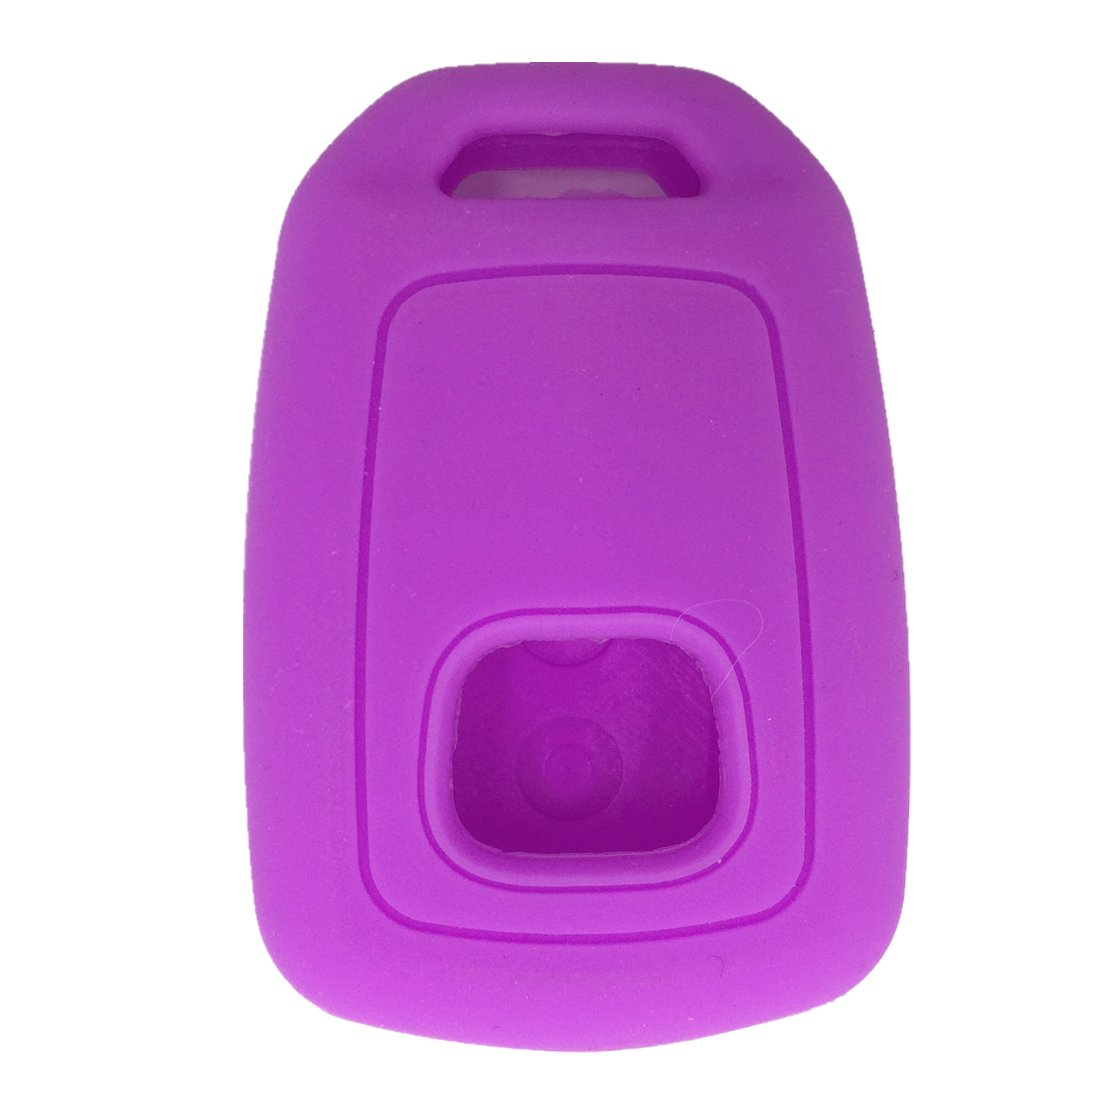 Ezzy Auto Black and Purple Silicone Key Fob Case Key Cover Jacket Holder Protector fit for 2013-2017 Honda Accord Sports